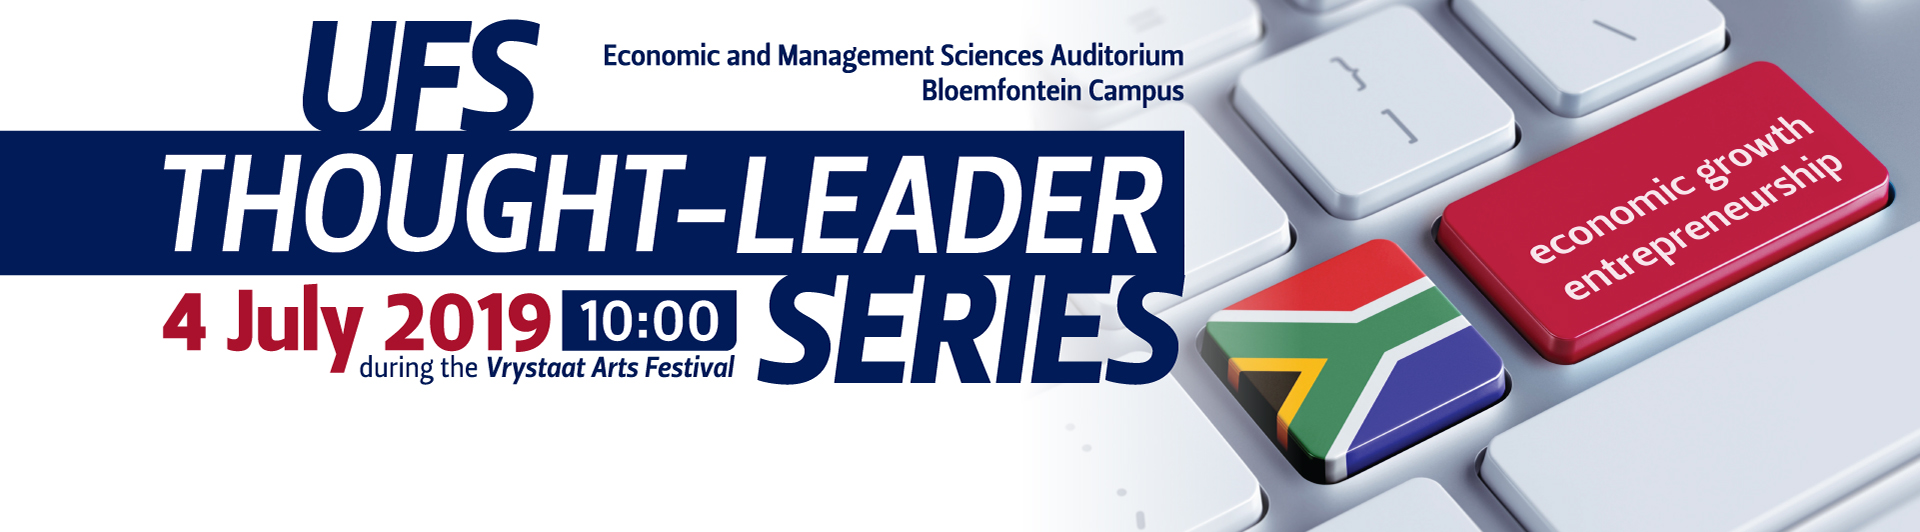 UFS Thought Leader Series 2019